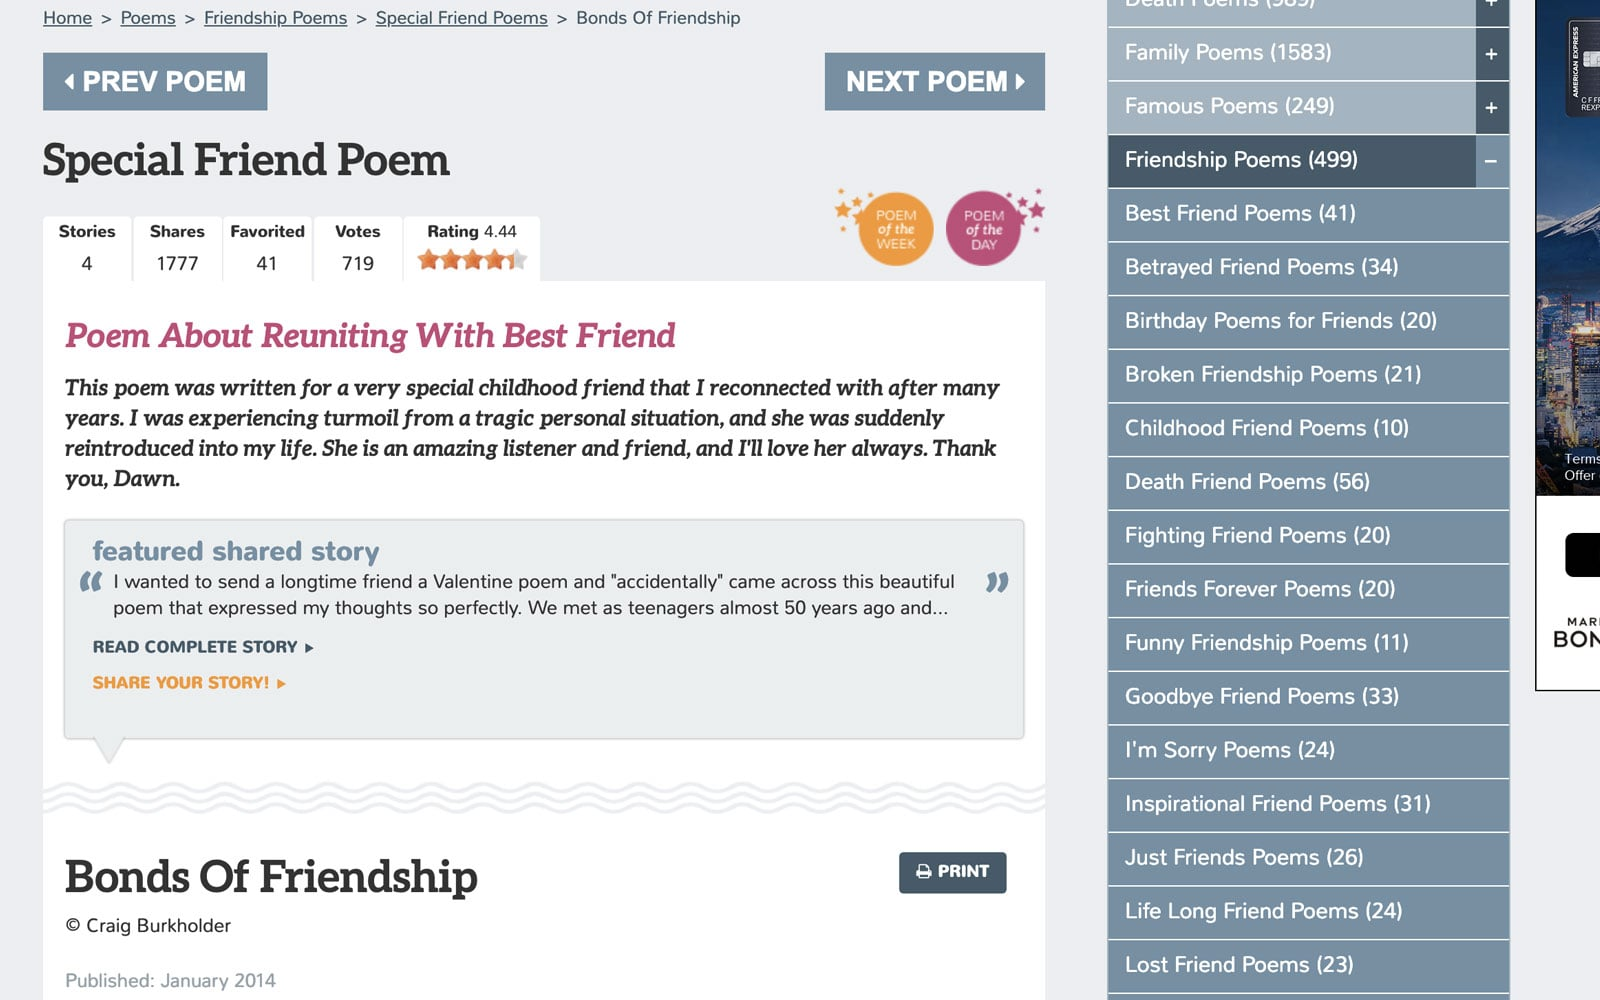 Screenshot of Poem page for Family Friend Poems